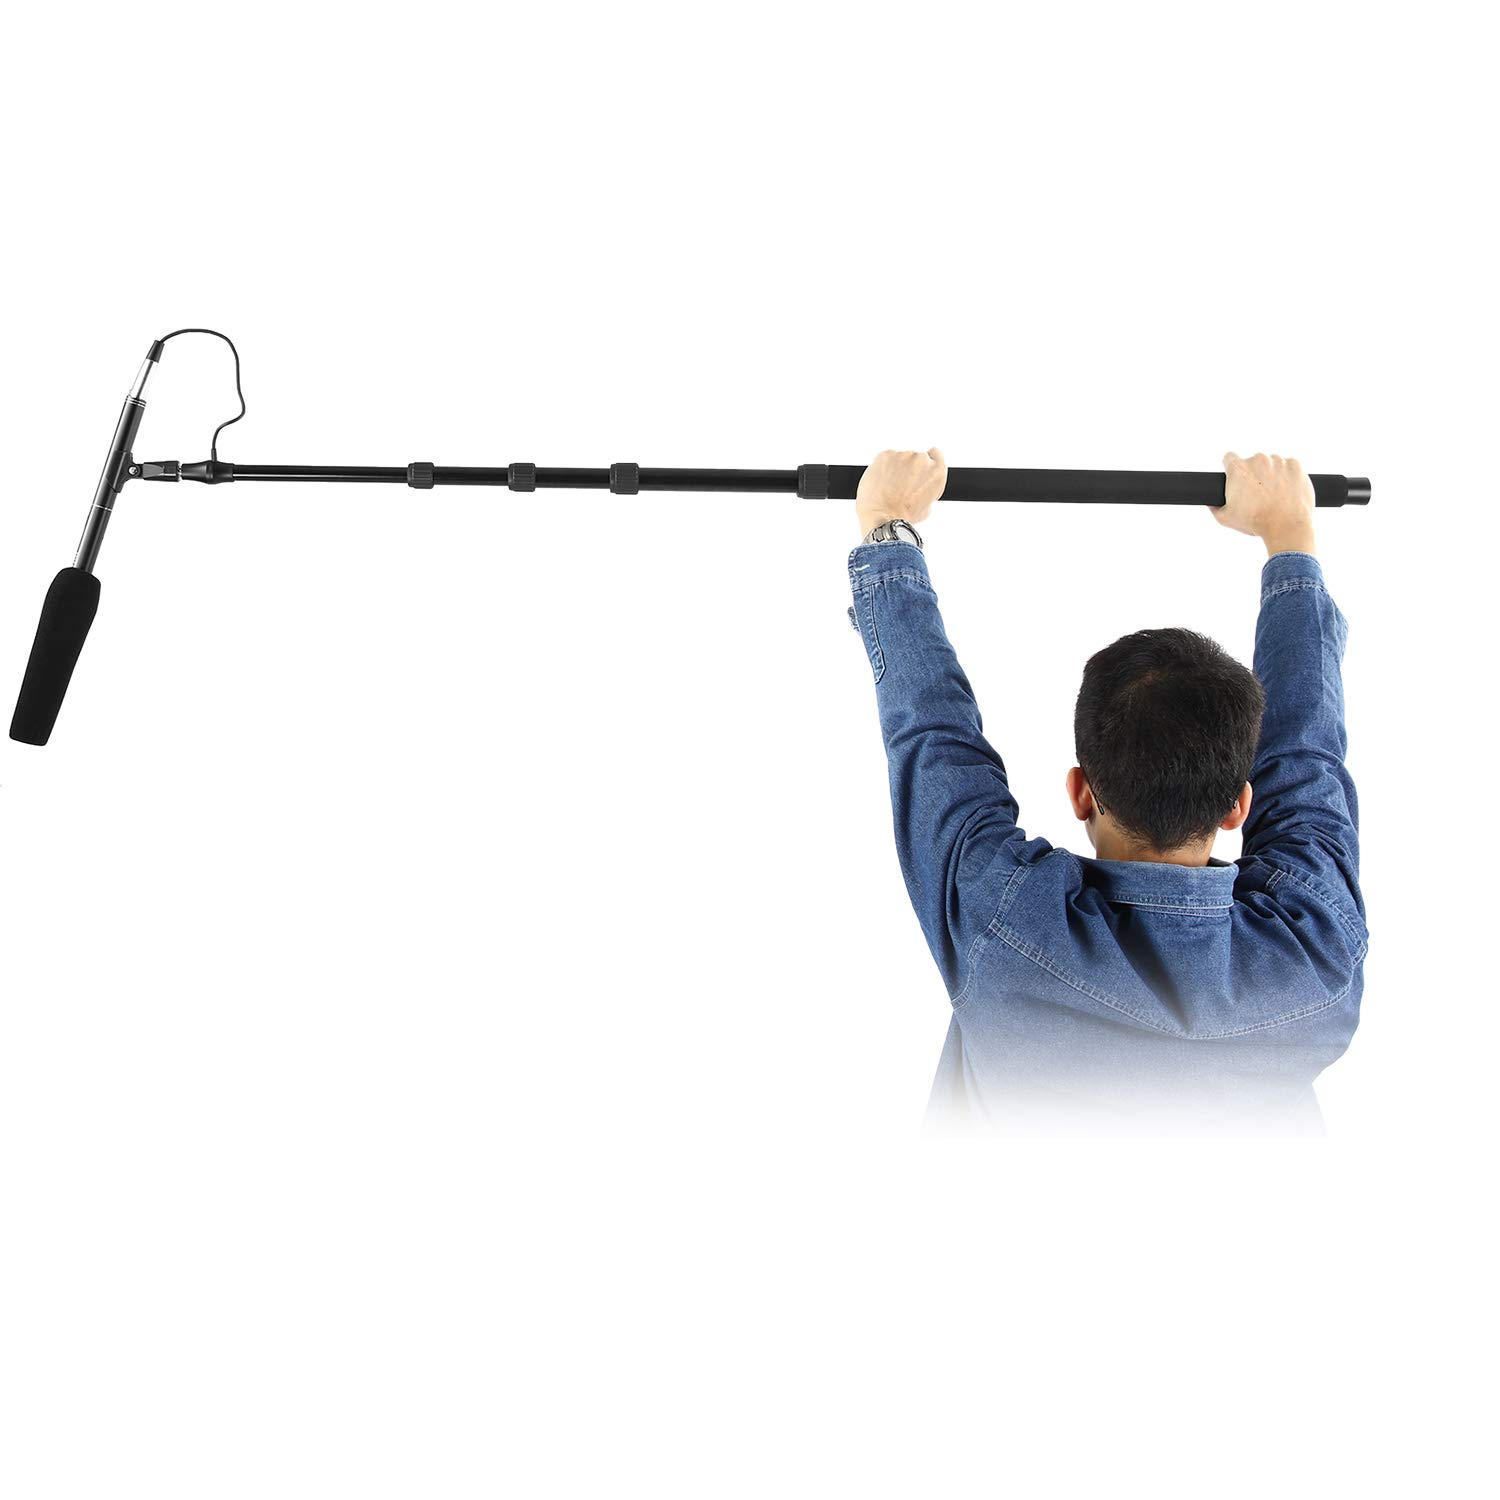 Neewer Portable Handheld Microphone Boom Pole with Built-in XLR Audio Cable, 5 Sections Stretchable 32.6-131 inches, Aluminum Construction with Easy Twist Locks and Padded Handle for Zoom Microphones by Neewer